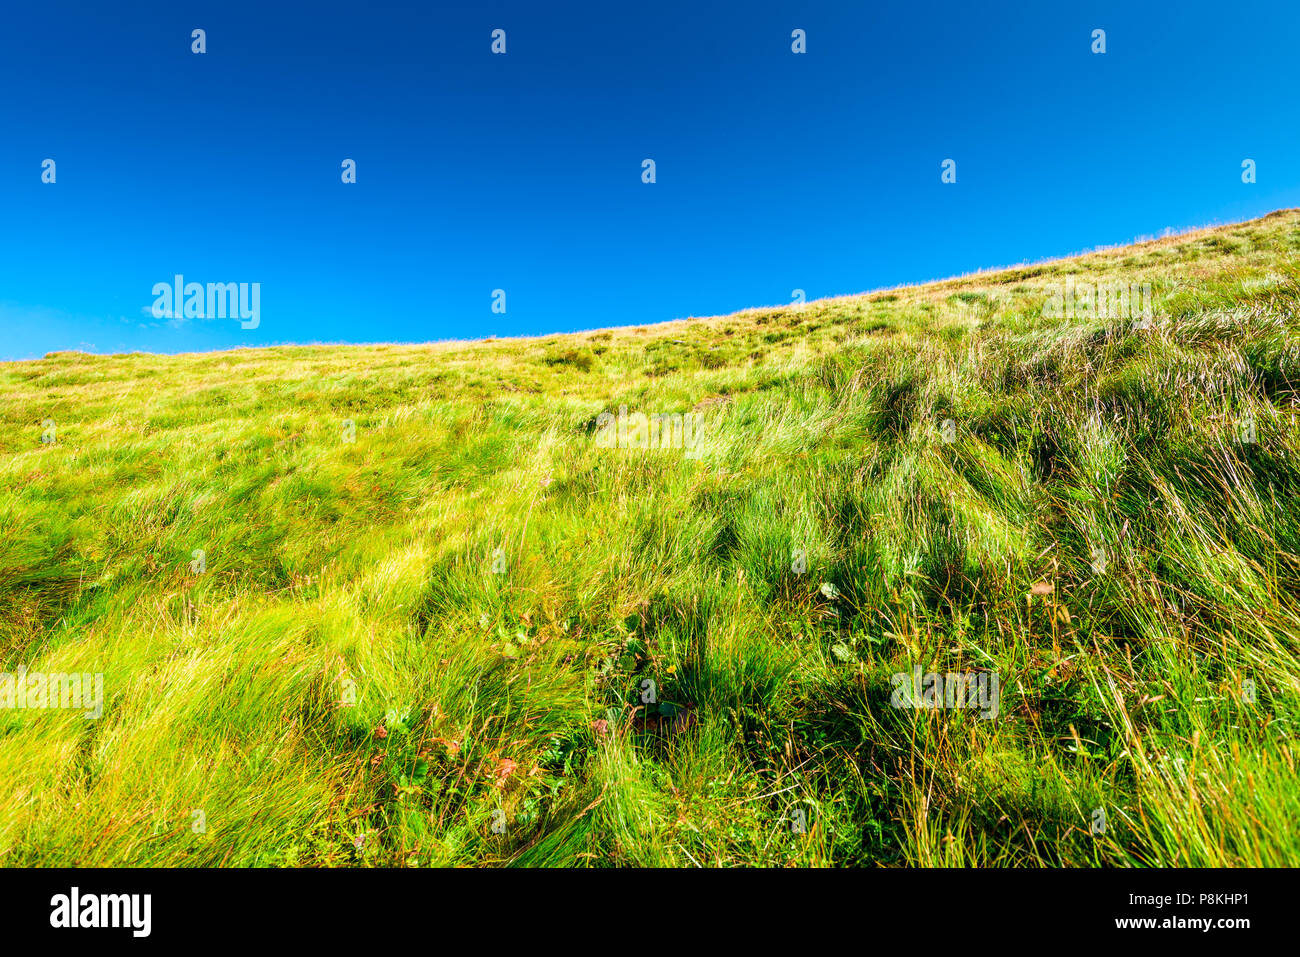 green slope of a mountain covered with grass against a blue sky background - Stock Image